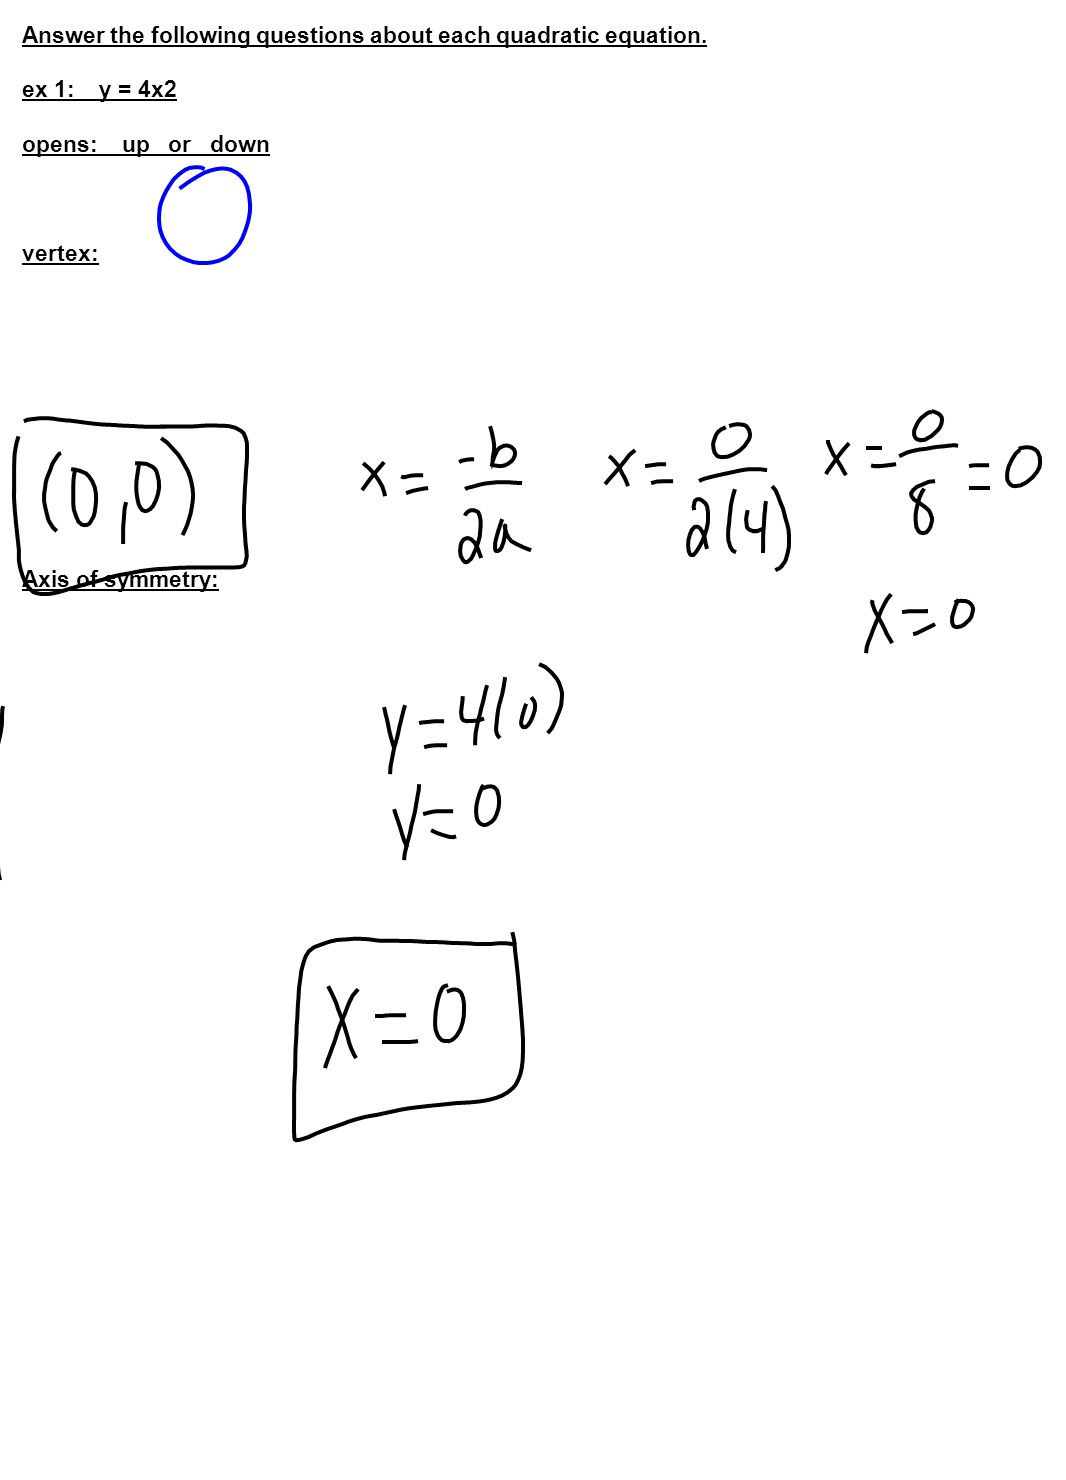 Answer the following questions about each quadratic equation.